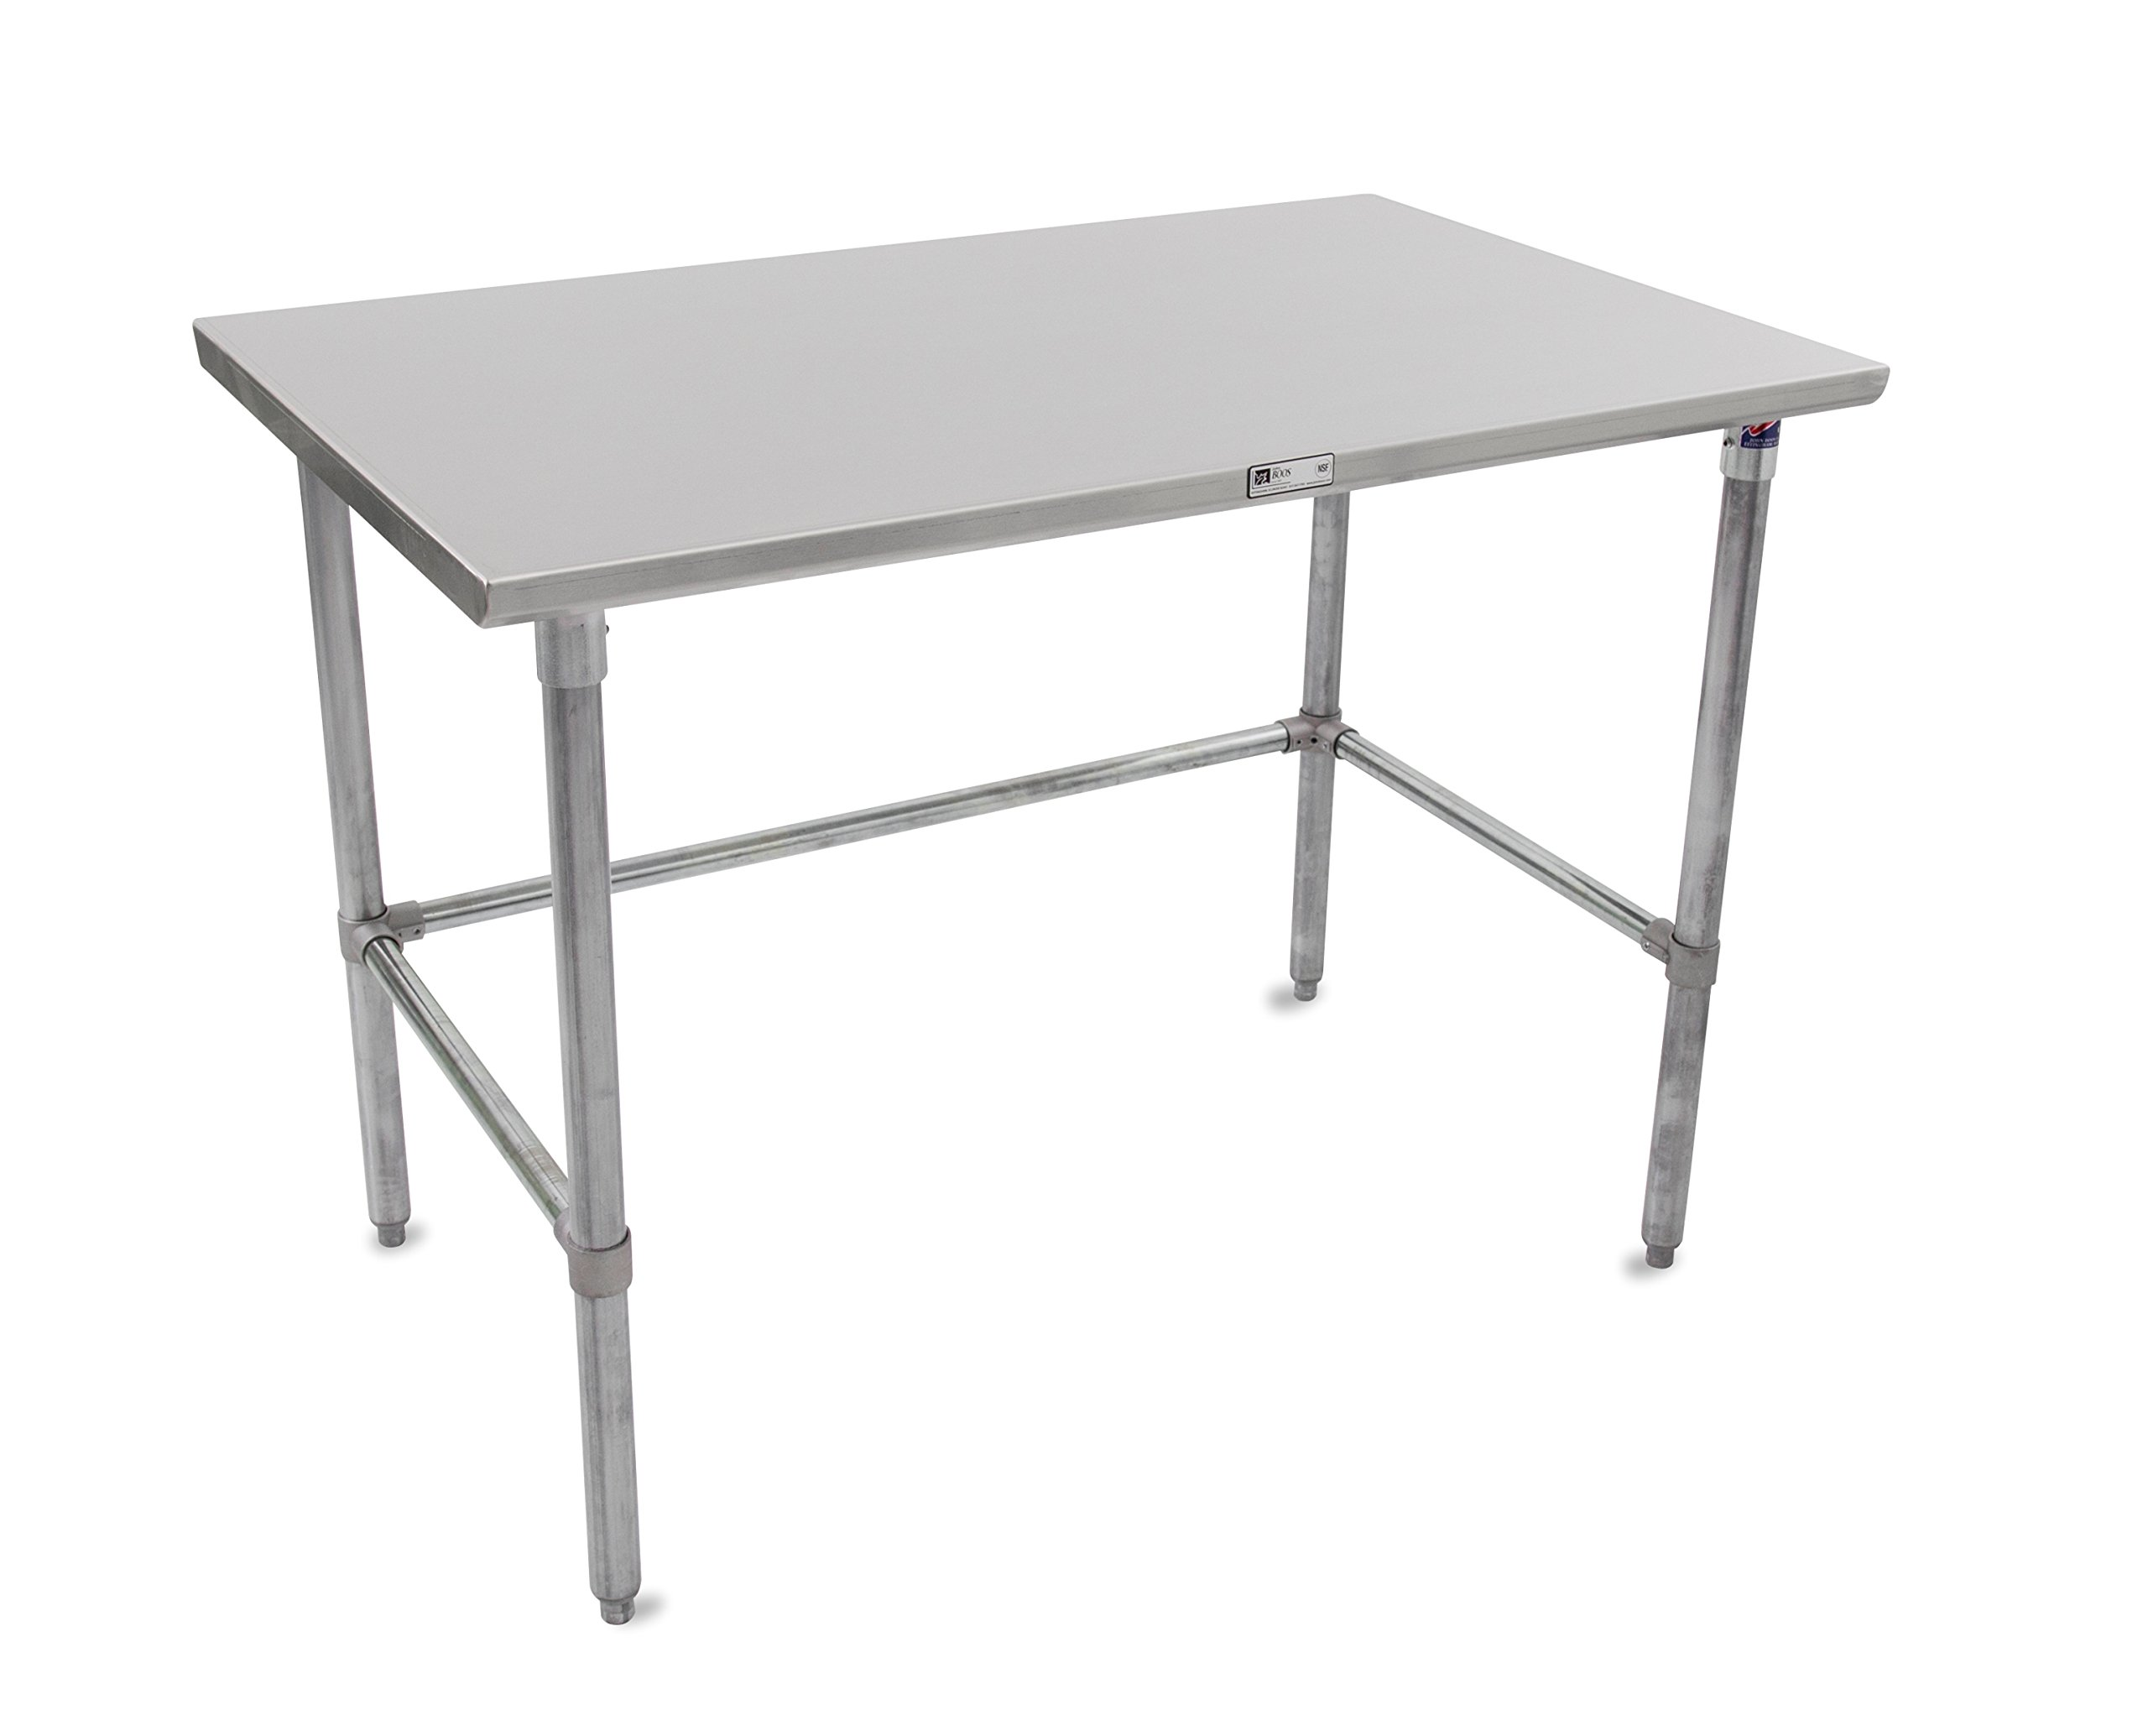 "John Boos Stallion ST6-2460GBK Stainless Steel Flat Top Work Table, Adjustable Galvanized Legs and Bracing, 60"" Length x 24"" Width"